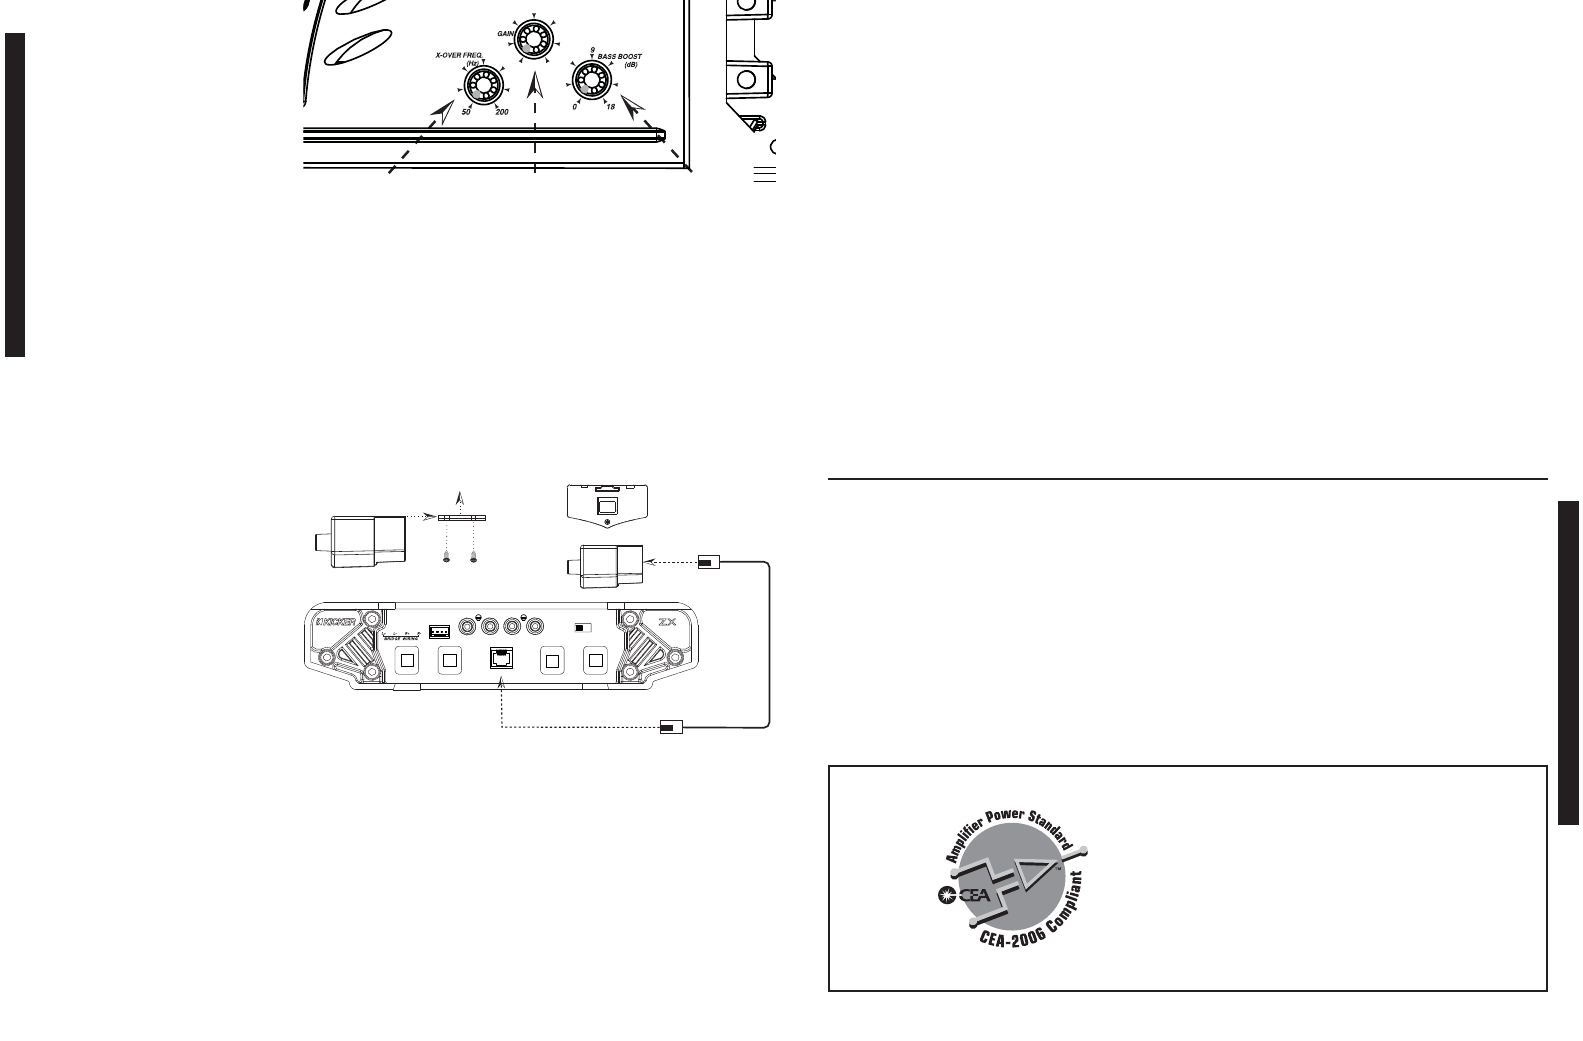 Kicker Zx850 2 Wiring Diagram Trusted Diagrams Autotek 1 Ohm Page 3 Of Stereo Amplifier User Guide Manualsonline Com Rh Audio Four Cvr Subwoofer Sub